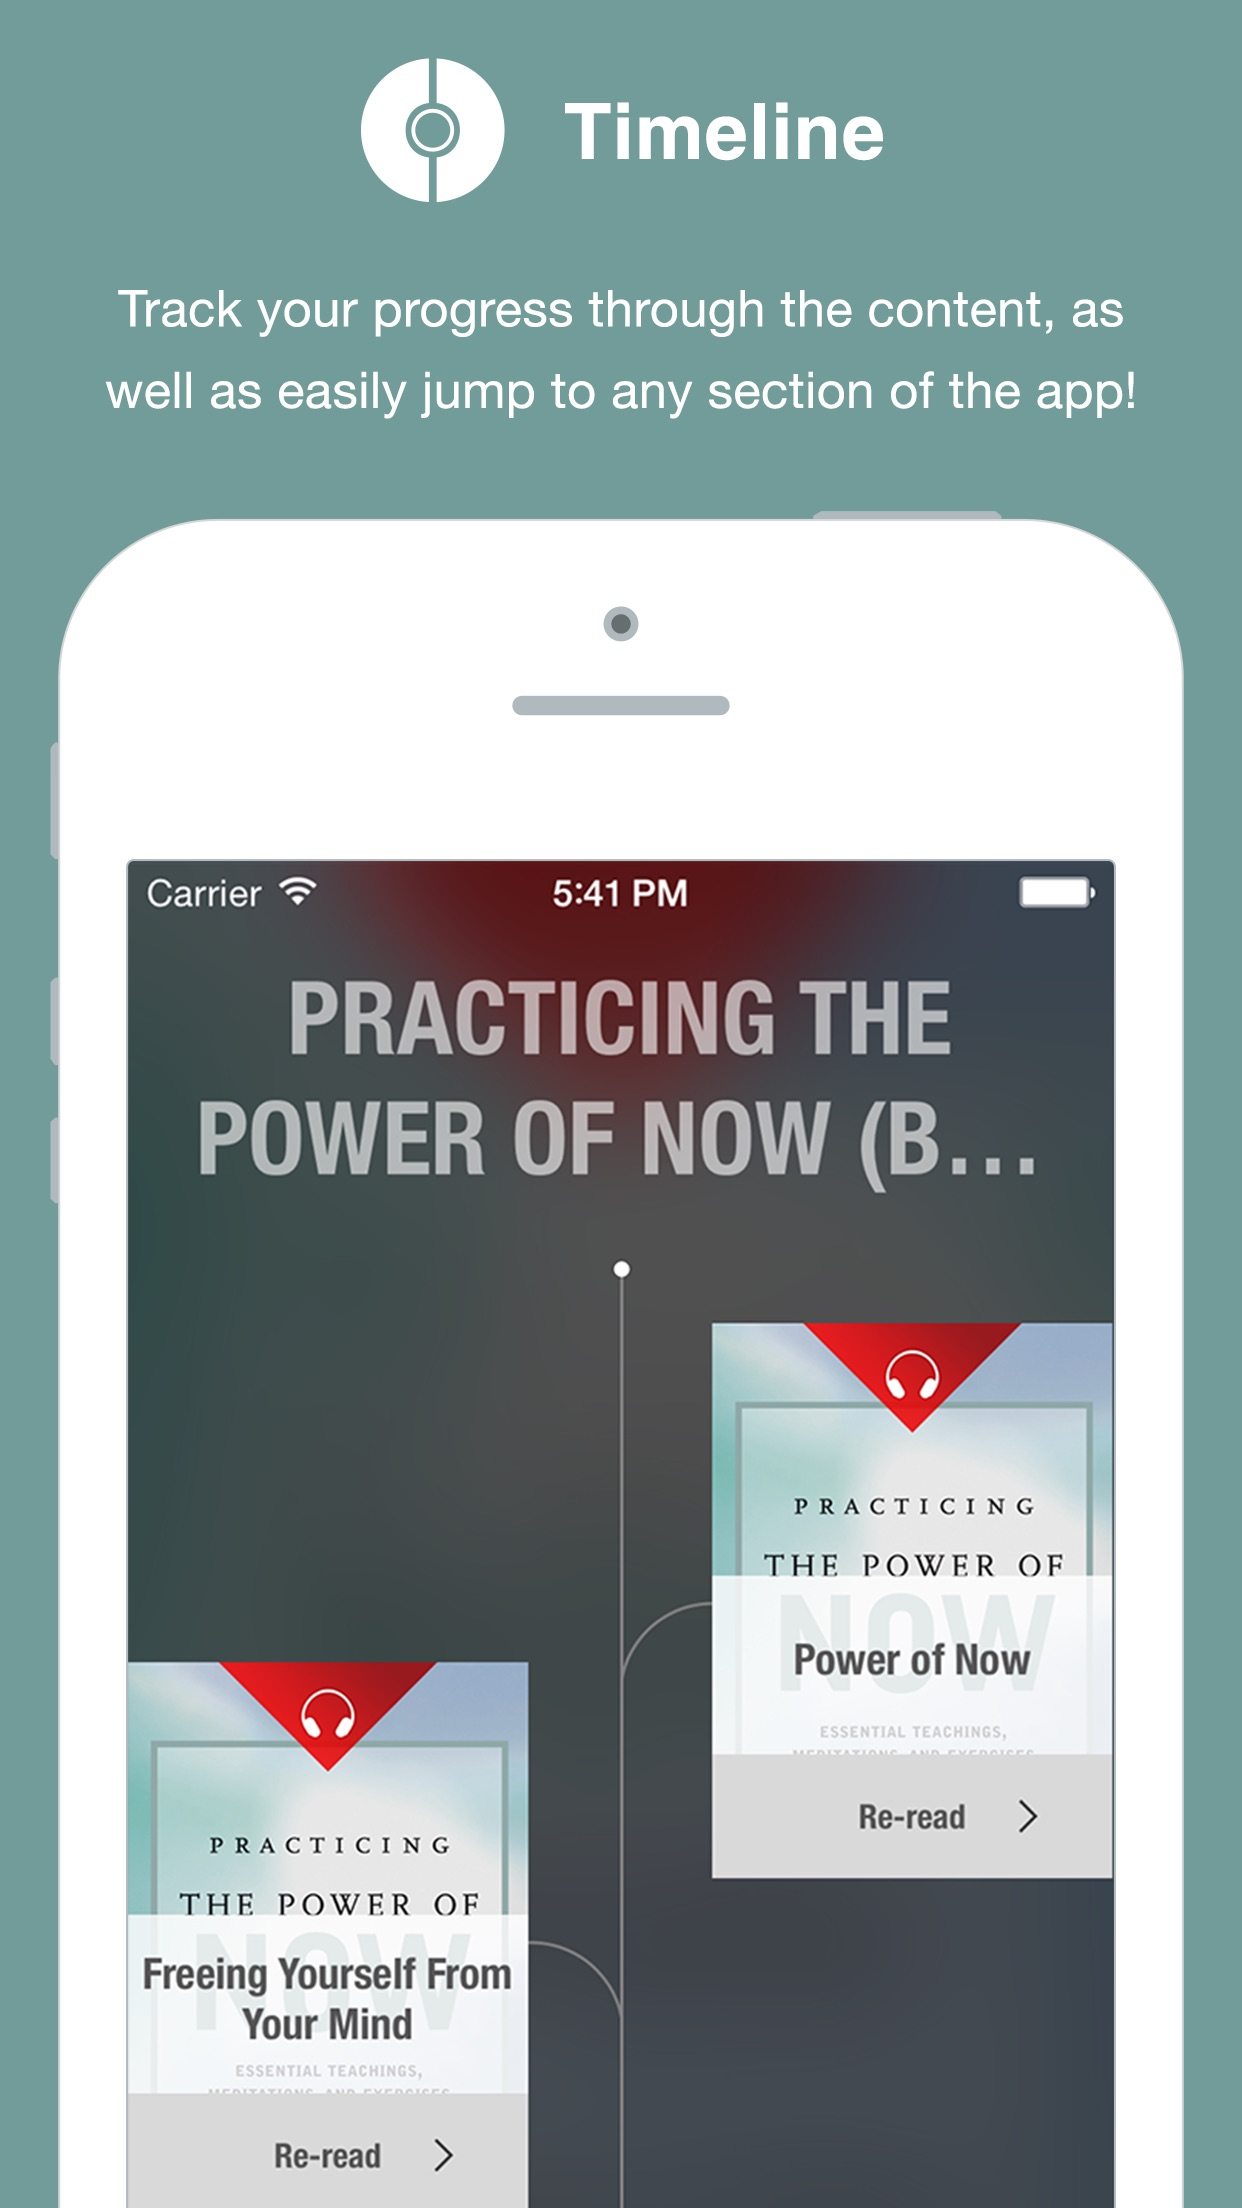 Practicing the Power of Now by Eckhart Tolle (with Audio) Screenshot